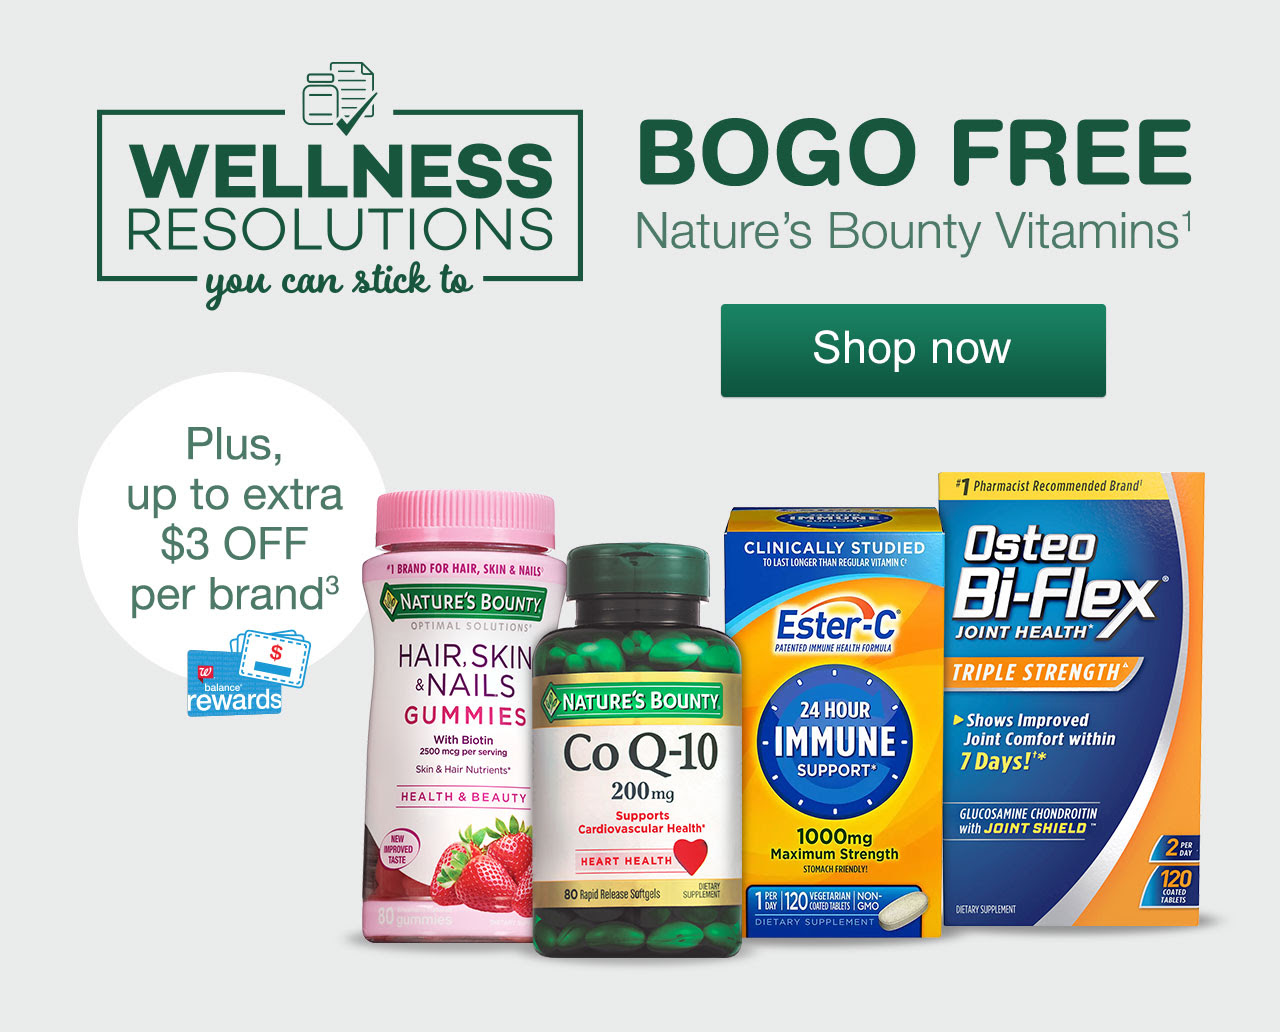 BOGO FREE Nature's Bounty Vitamins. Plus, up to extra $3 OFF per brand.